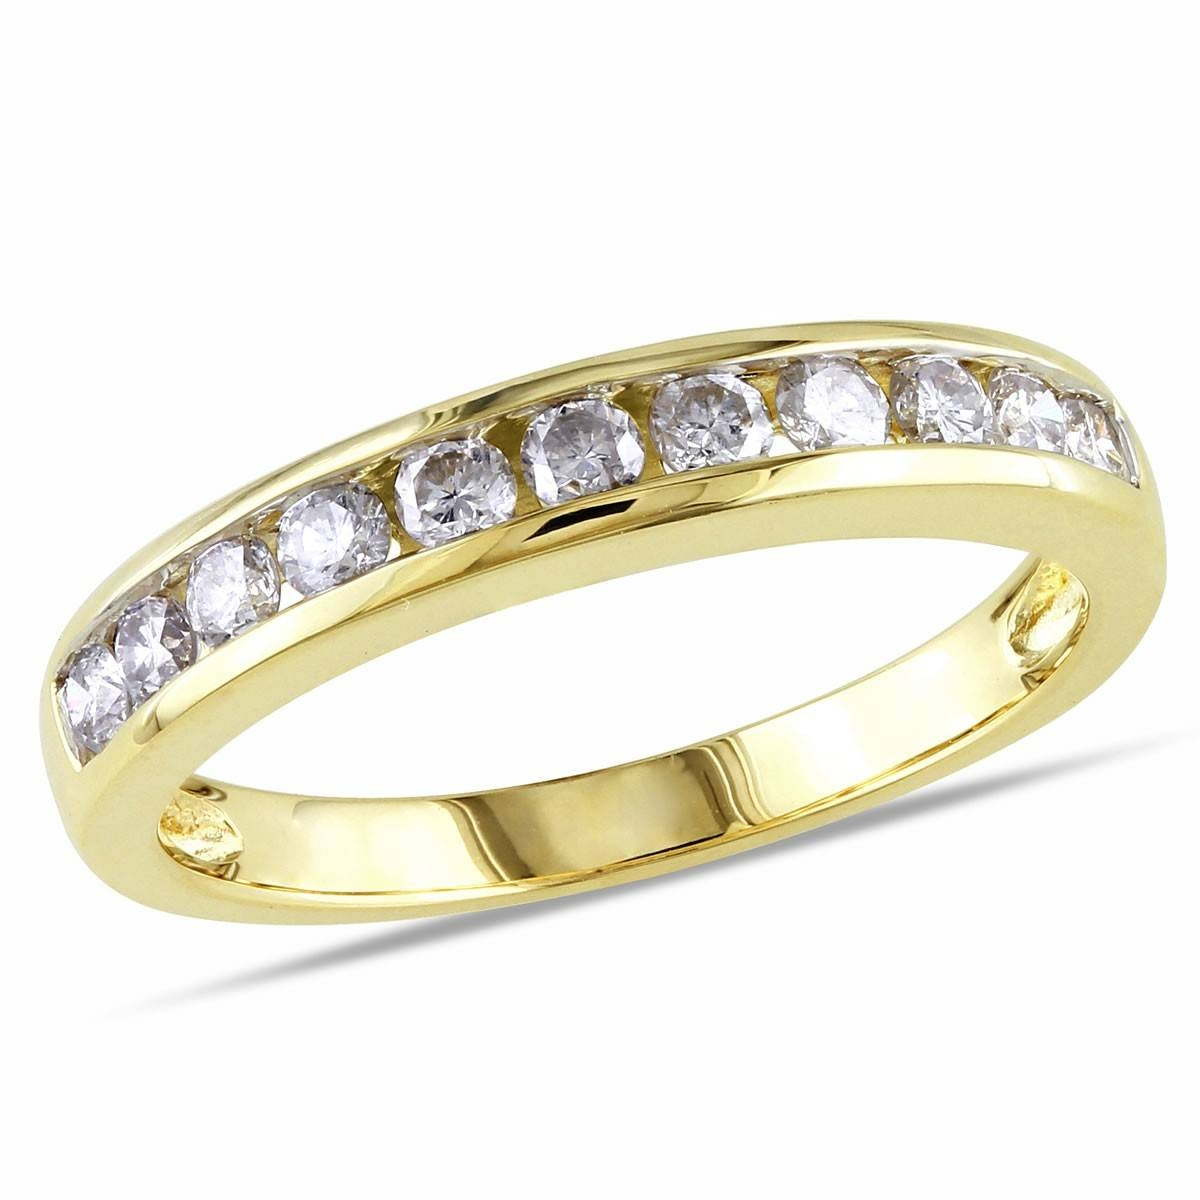 10K Yellow Gold 1/2 Ct Diamond Tw Eternity Anniversary Ring, Gh I2 For Best And Newest Diamond And Sapphire Anniversary Rings (View 1 of 25)